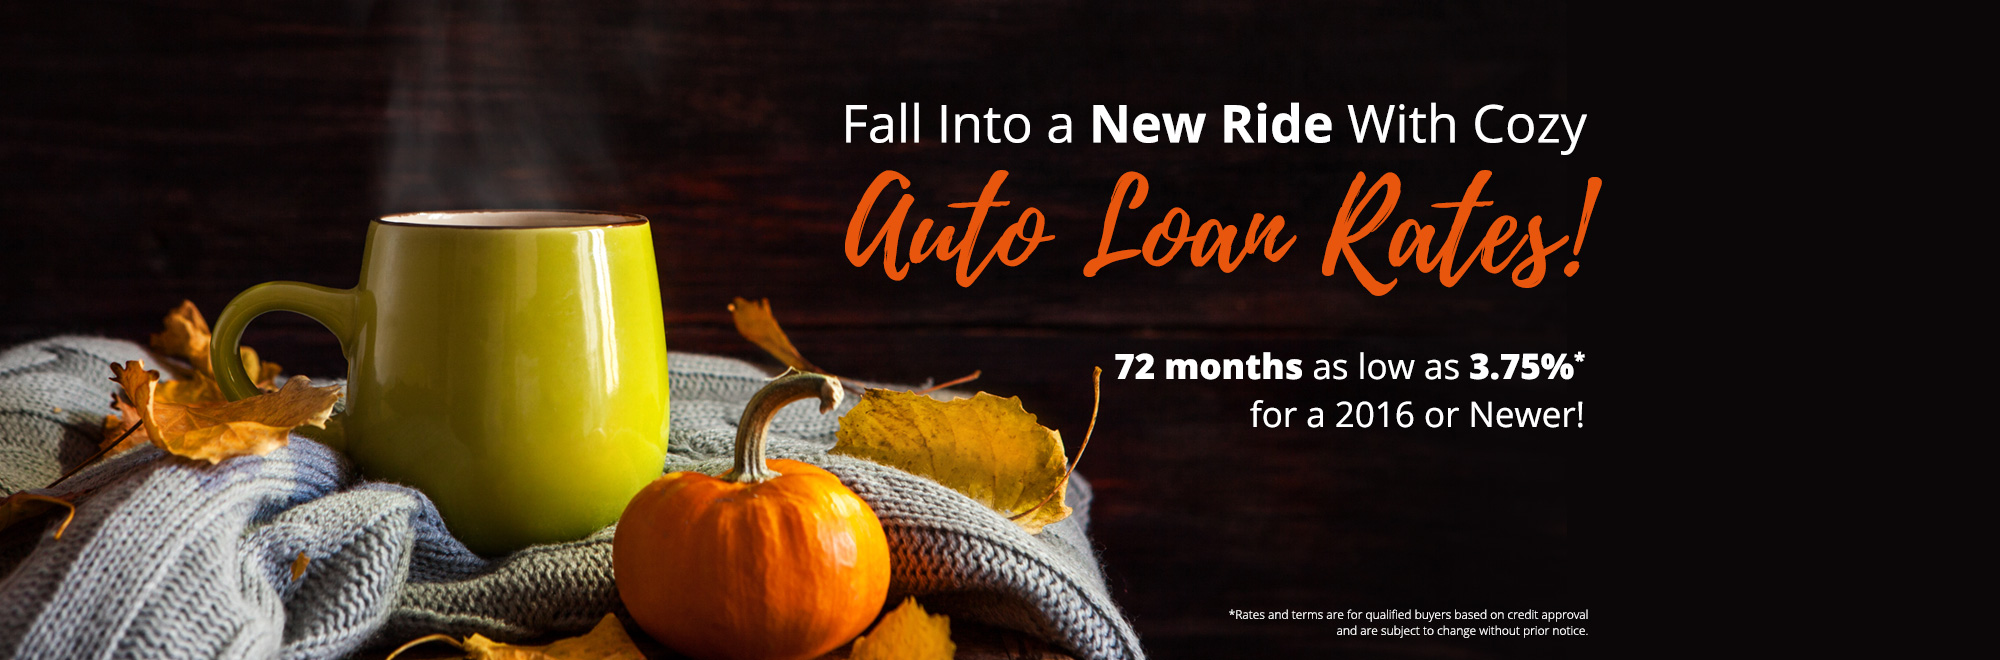 Fall into Cozy Rates Banner